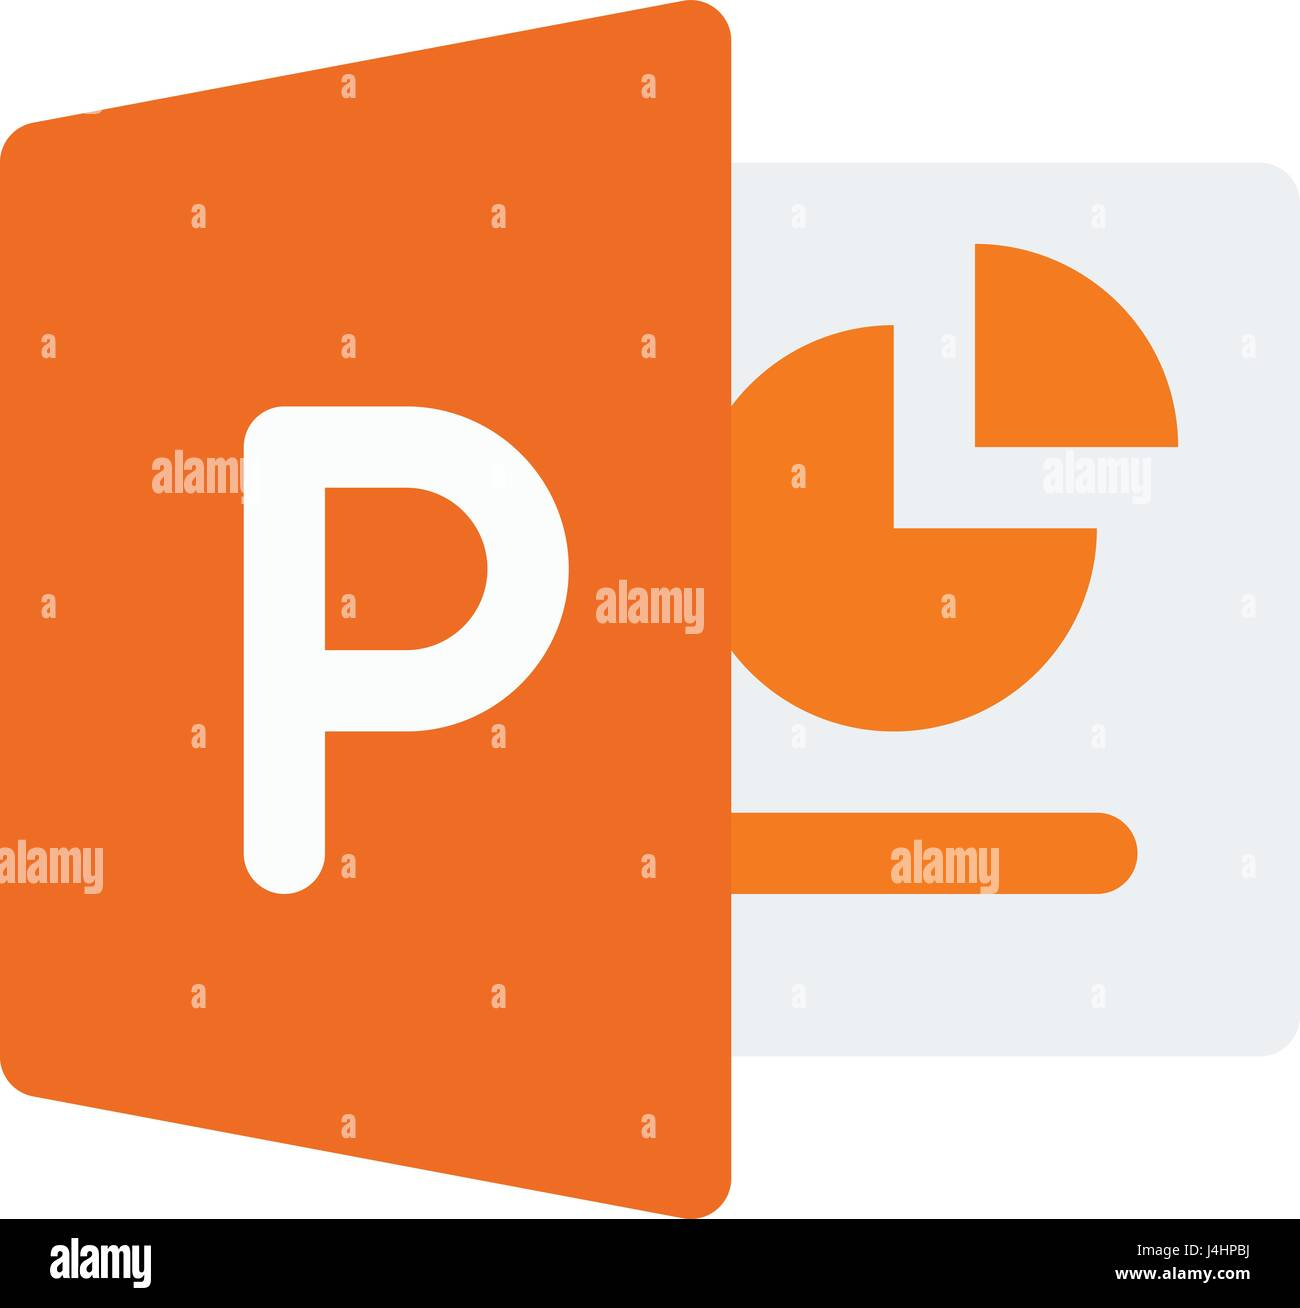 Microsoft Logo Stock Vector Images Alamy